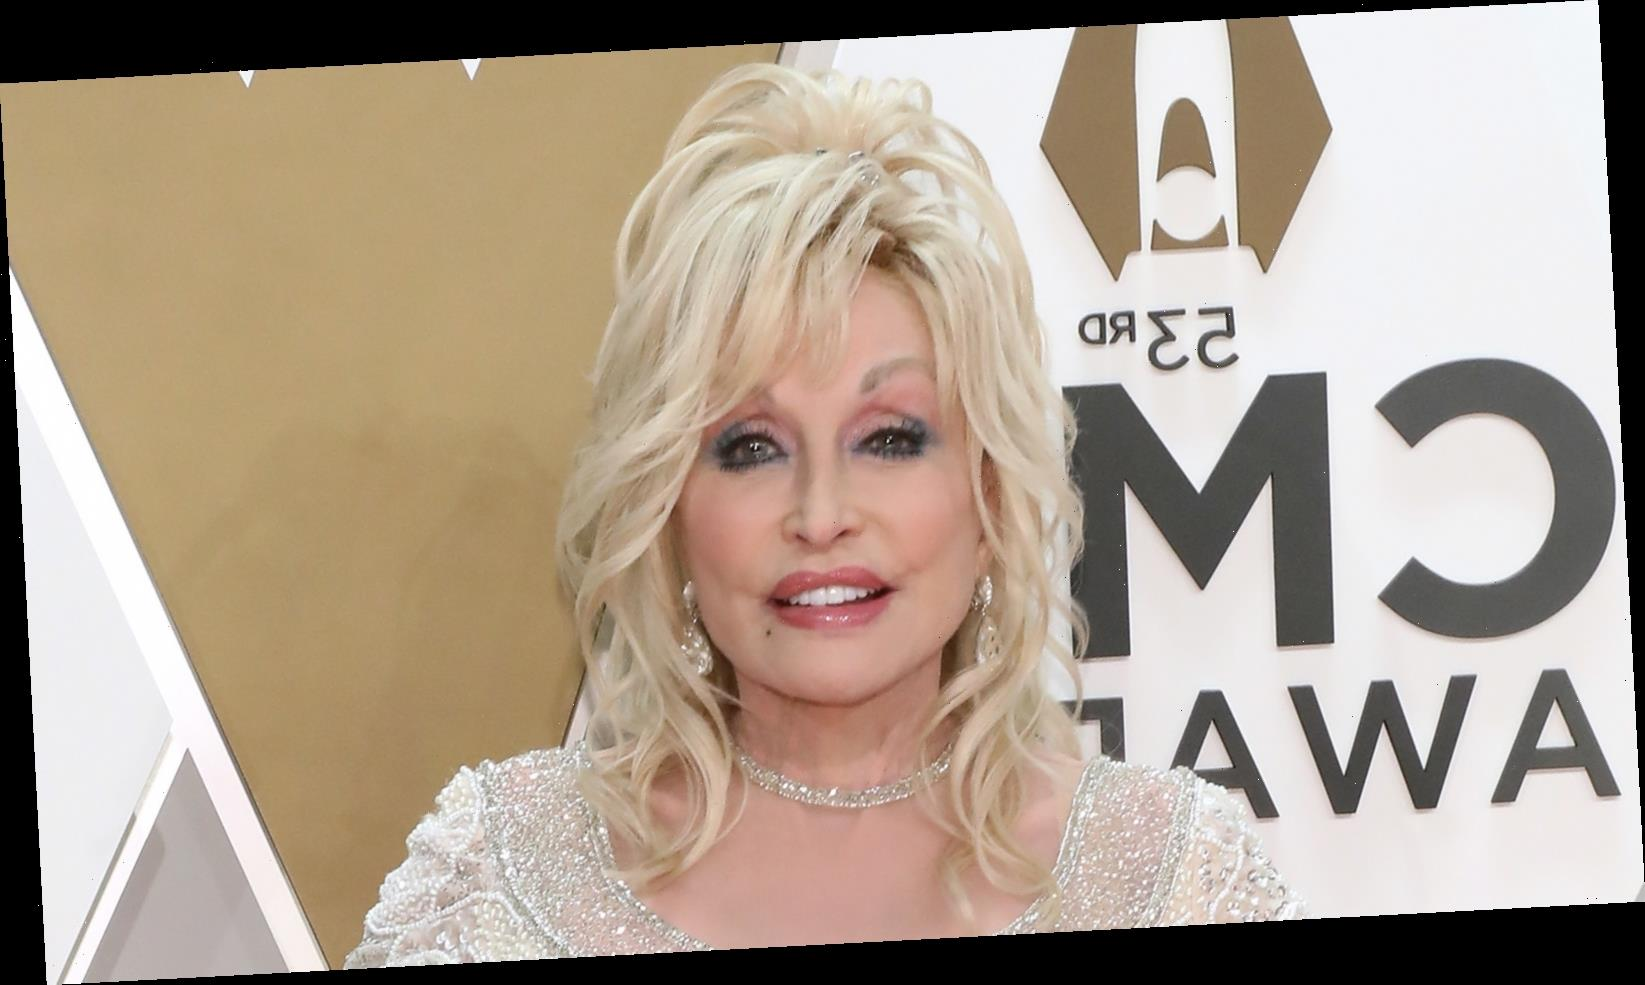 Dolly Parton opens up about her decision not to have kids